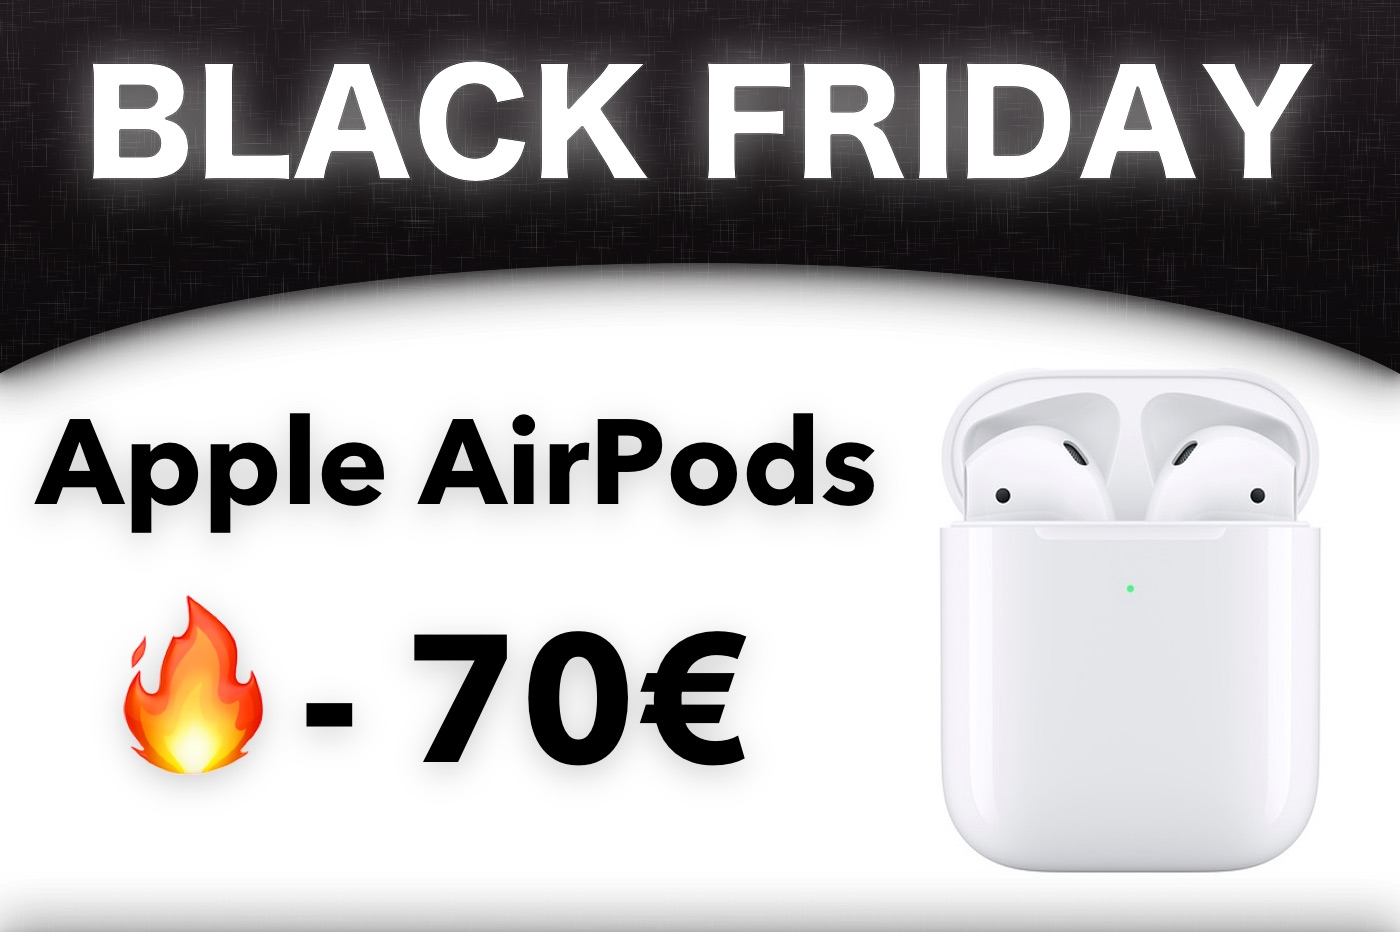 Black Friday : -70 € sur les AirPods d'Apple, il en reste encore ! 1